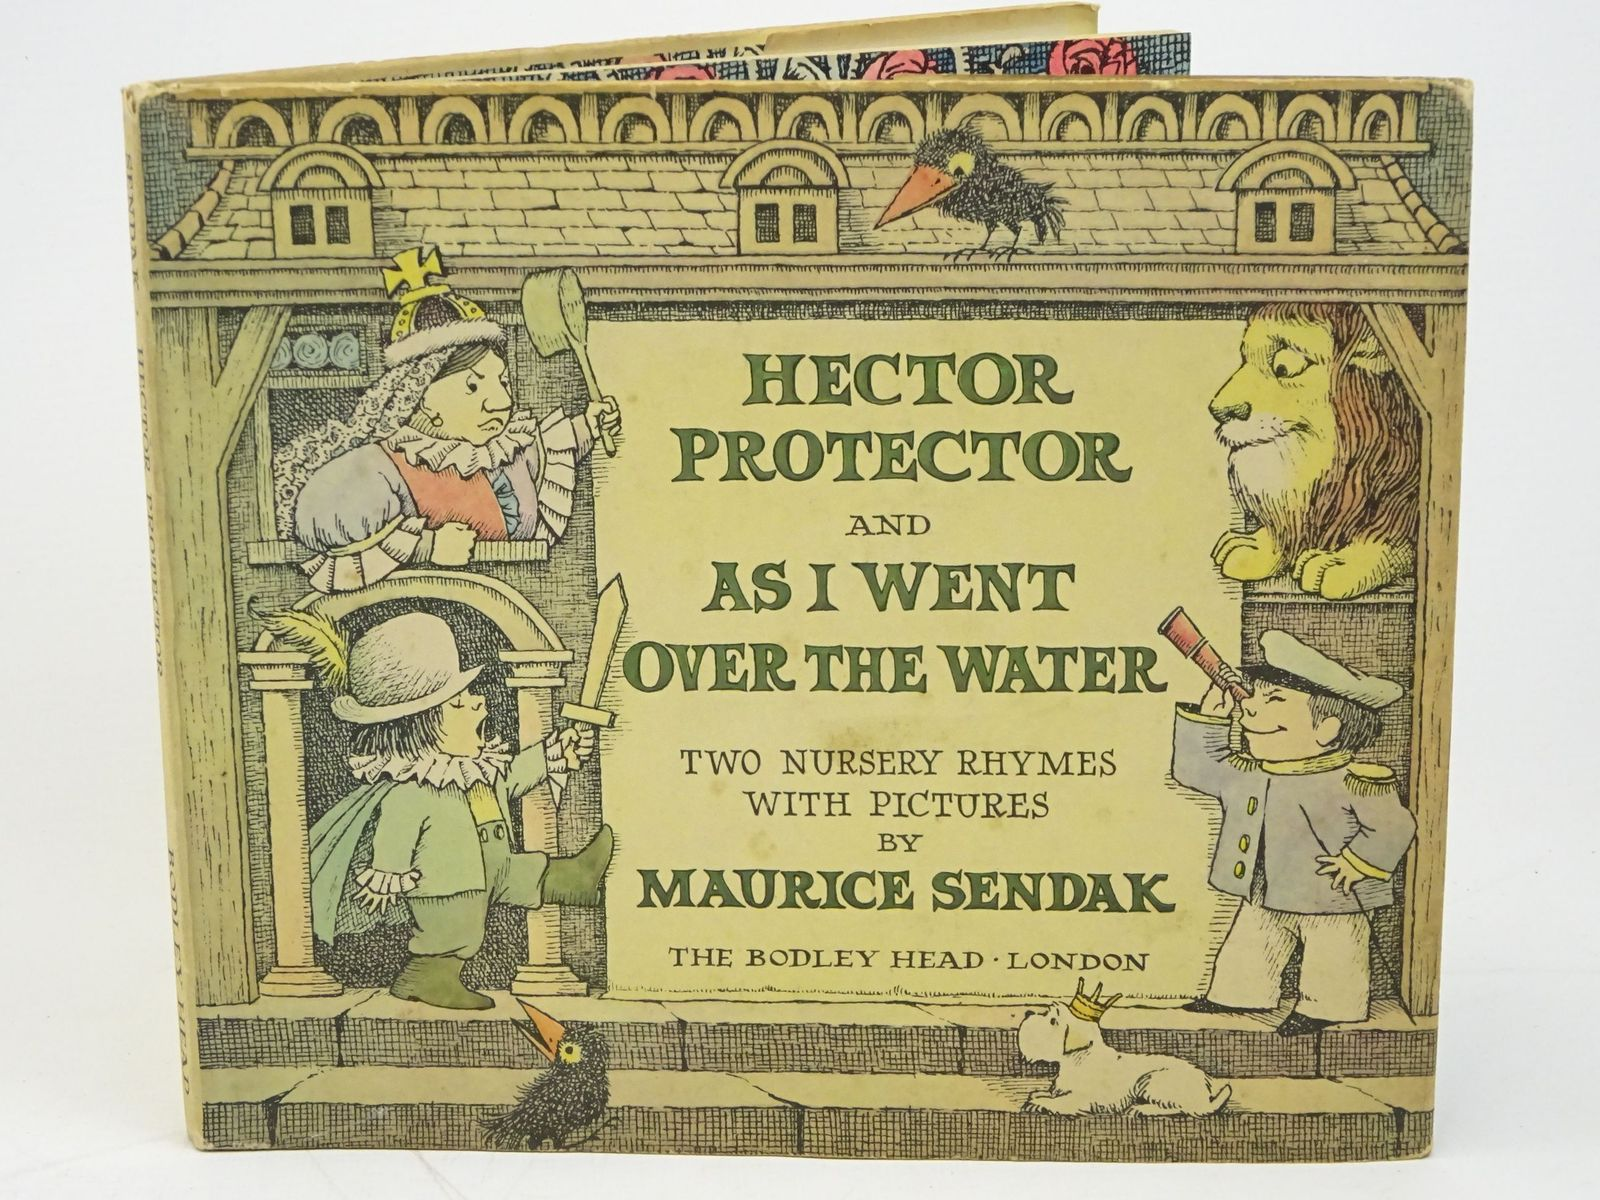 Photo of HECTOR PROTECTOR AND AS I WENT OVER THE WATER written by Sendak, Maurice illustrated by Sendak, Maurice published by The Bodley Head (STOCK CODE: 1318026)  for sale by Stella & Rose's Books